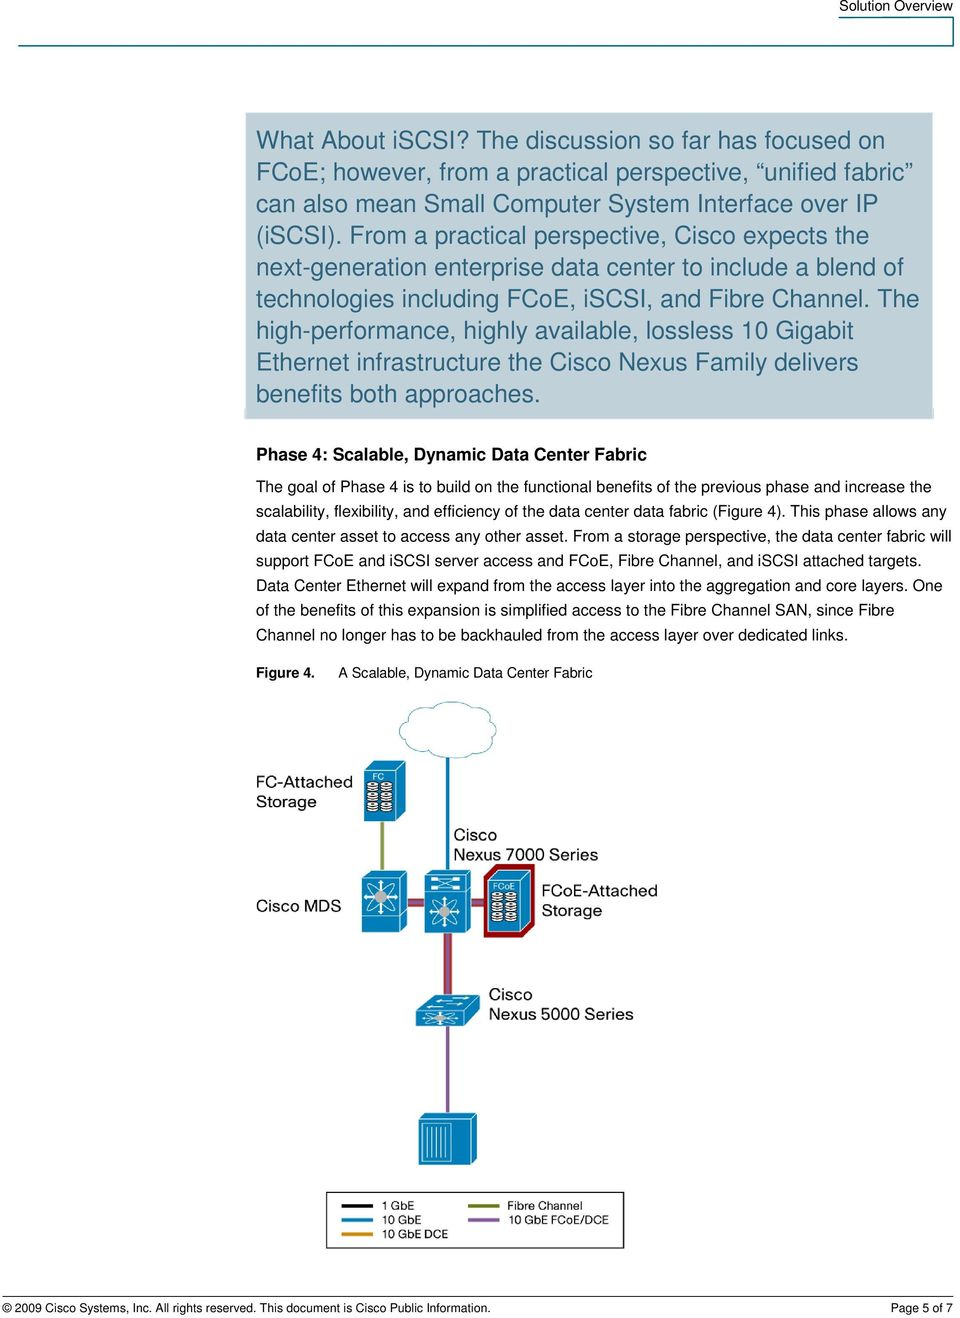 The high-performance, highly available, lossless 10 Gigabit Ethernet infrastructure the Cisco Nexus Family delivers benefits both approaches.